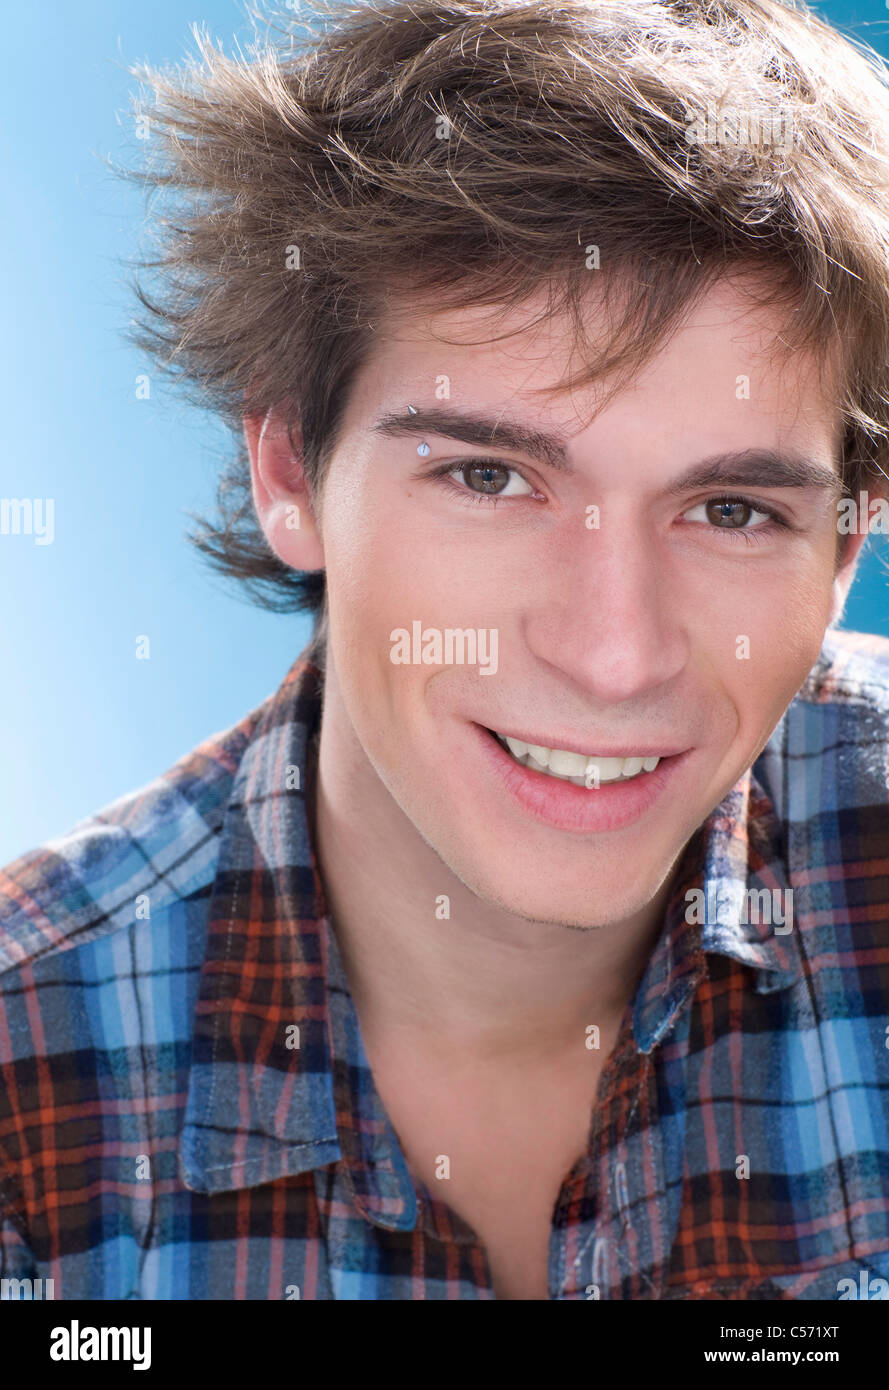 Boy Wearing Eyebrow Piercing Stock Photo 37649216 Alamy